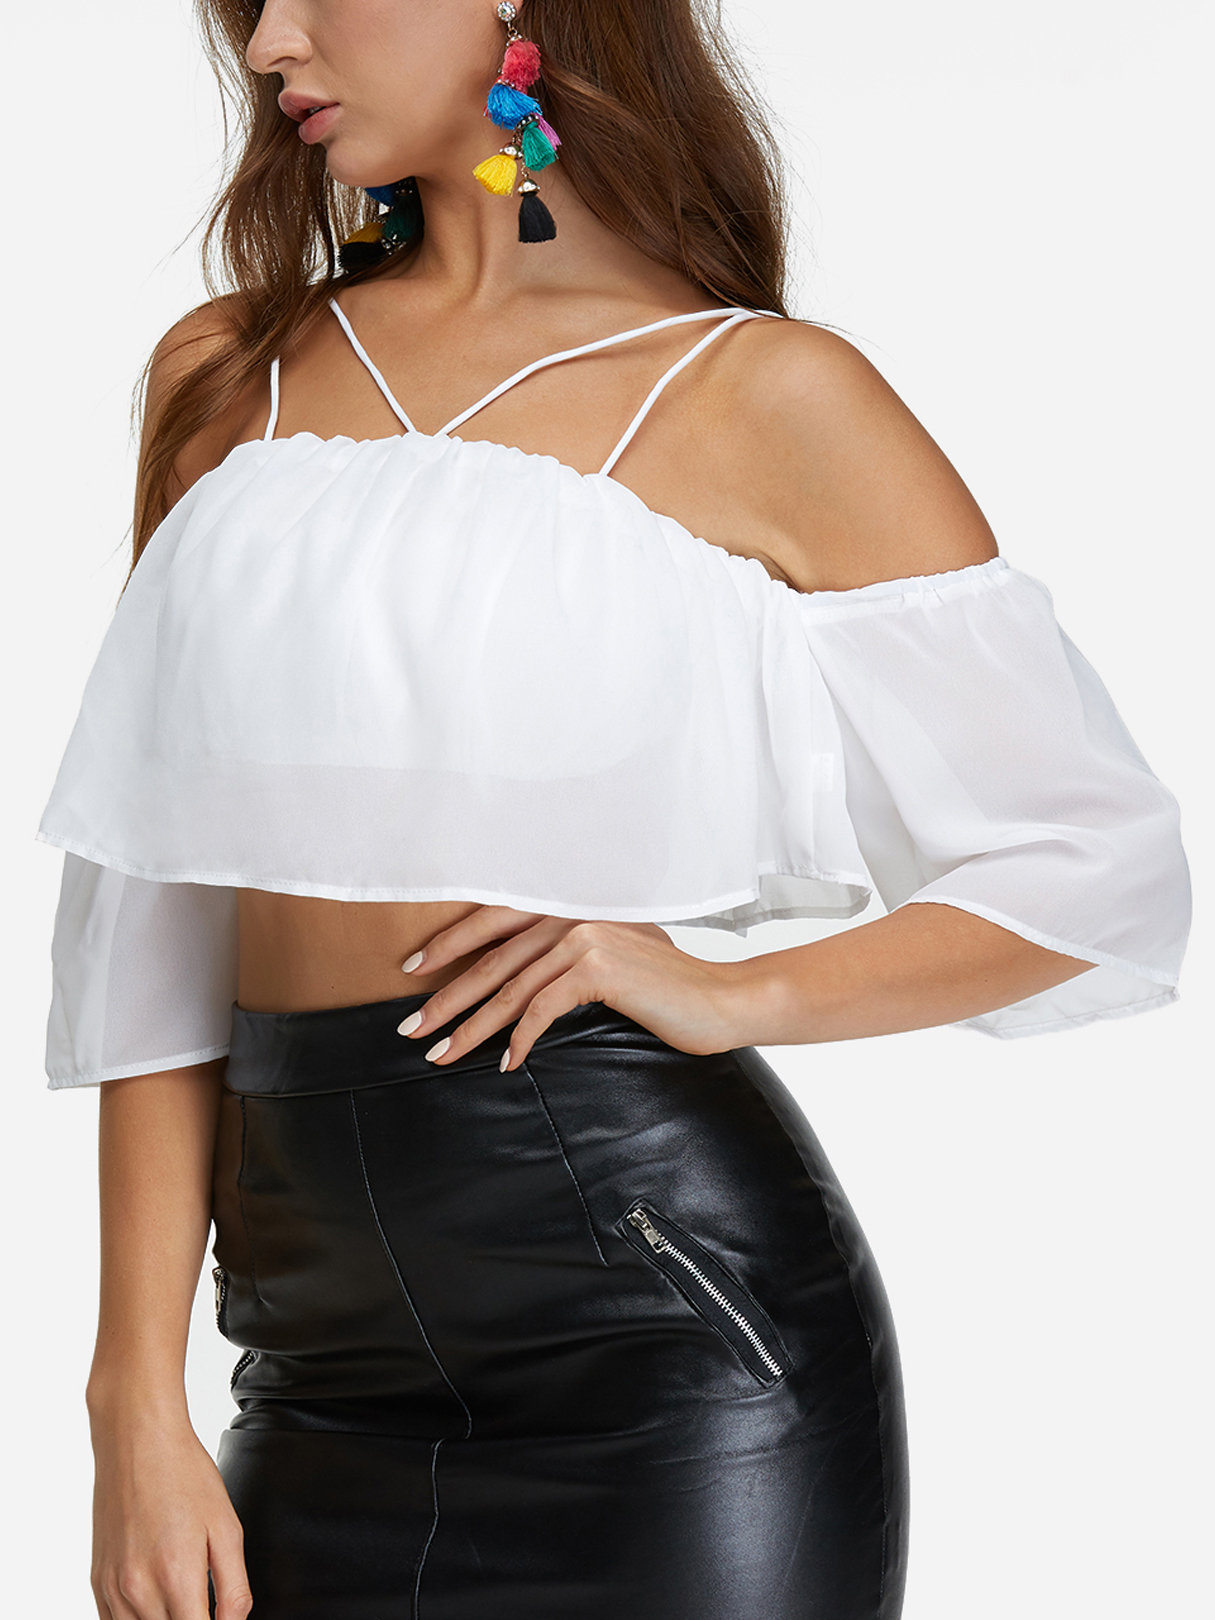 Off-The-Shoulder Crop Top in White sweet off the shoulder lace hem white crop top for women